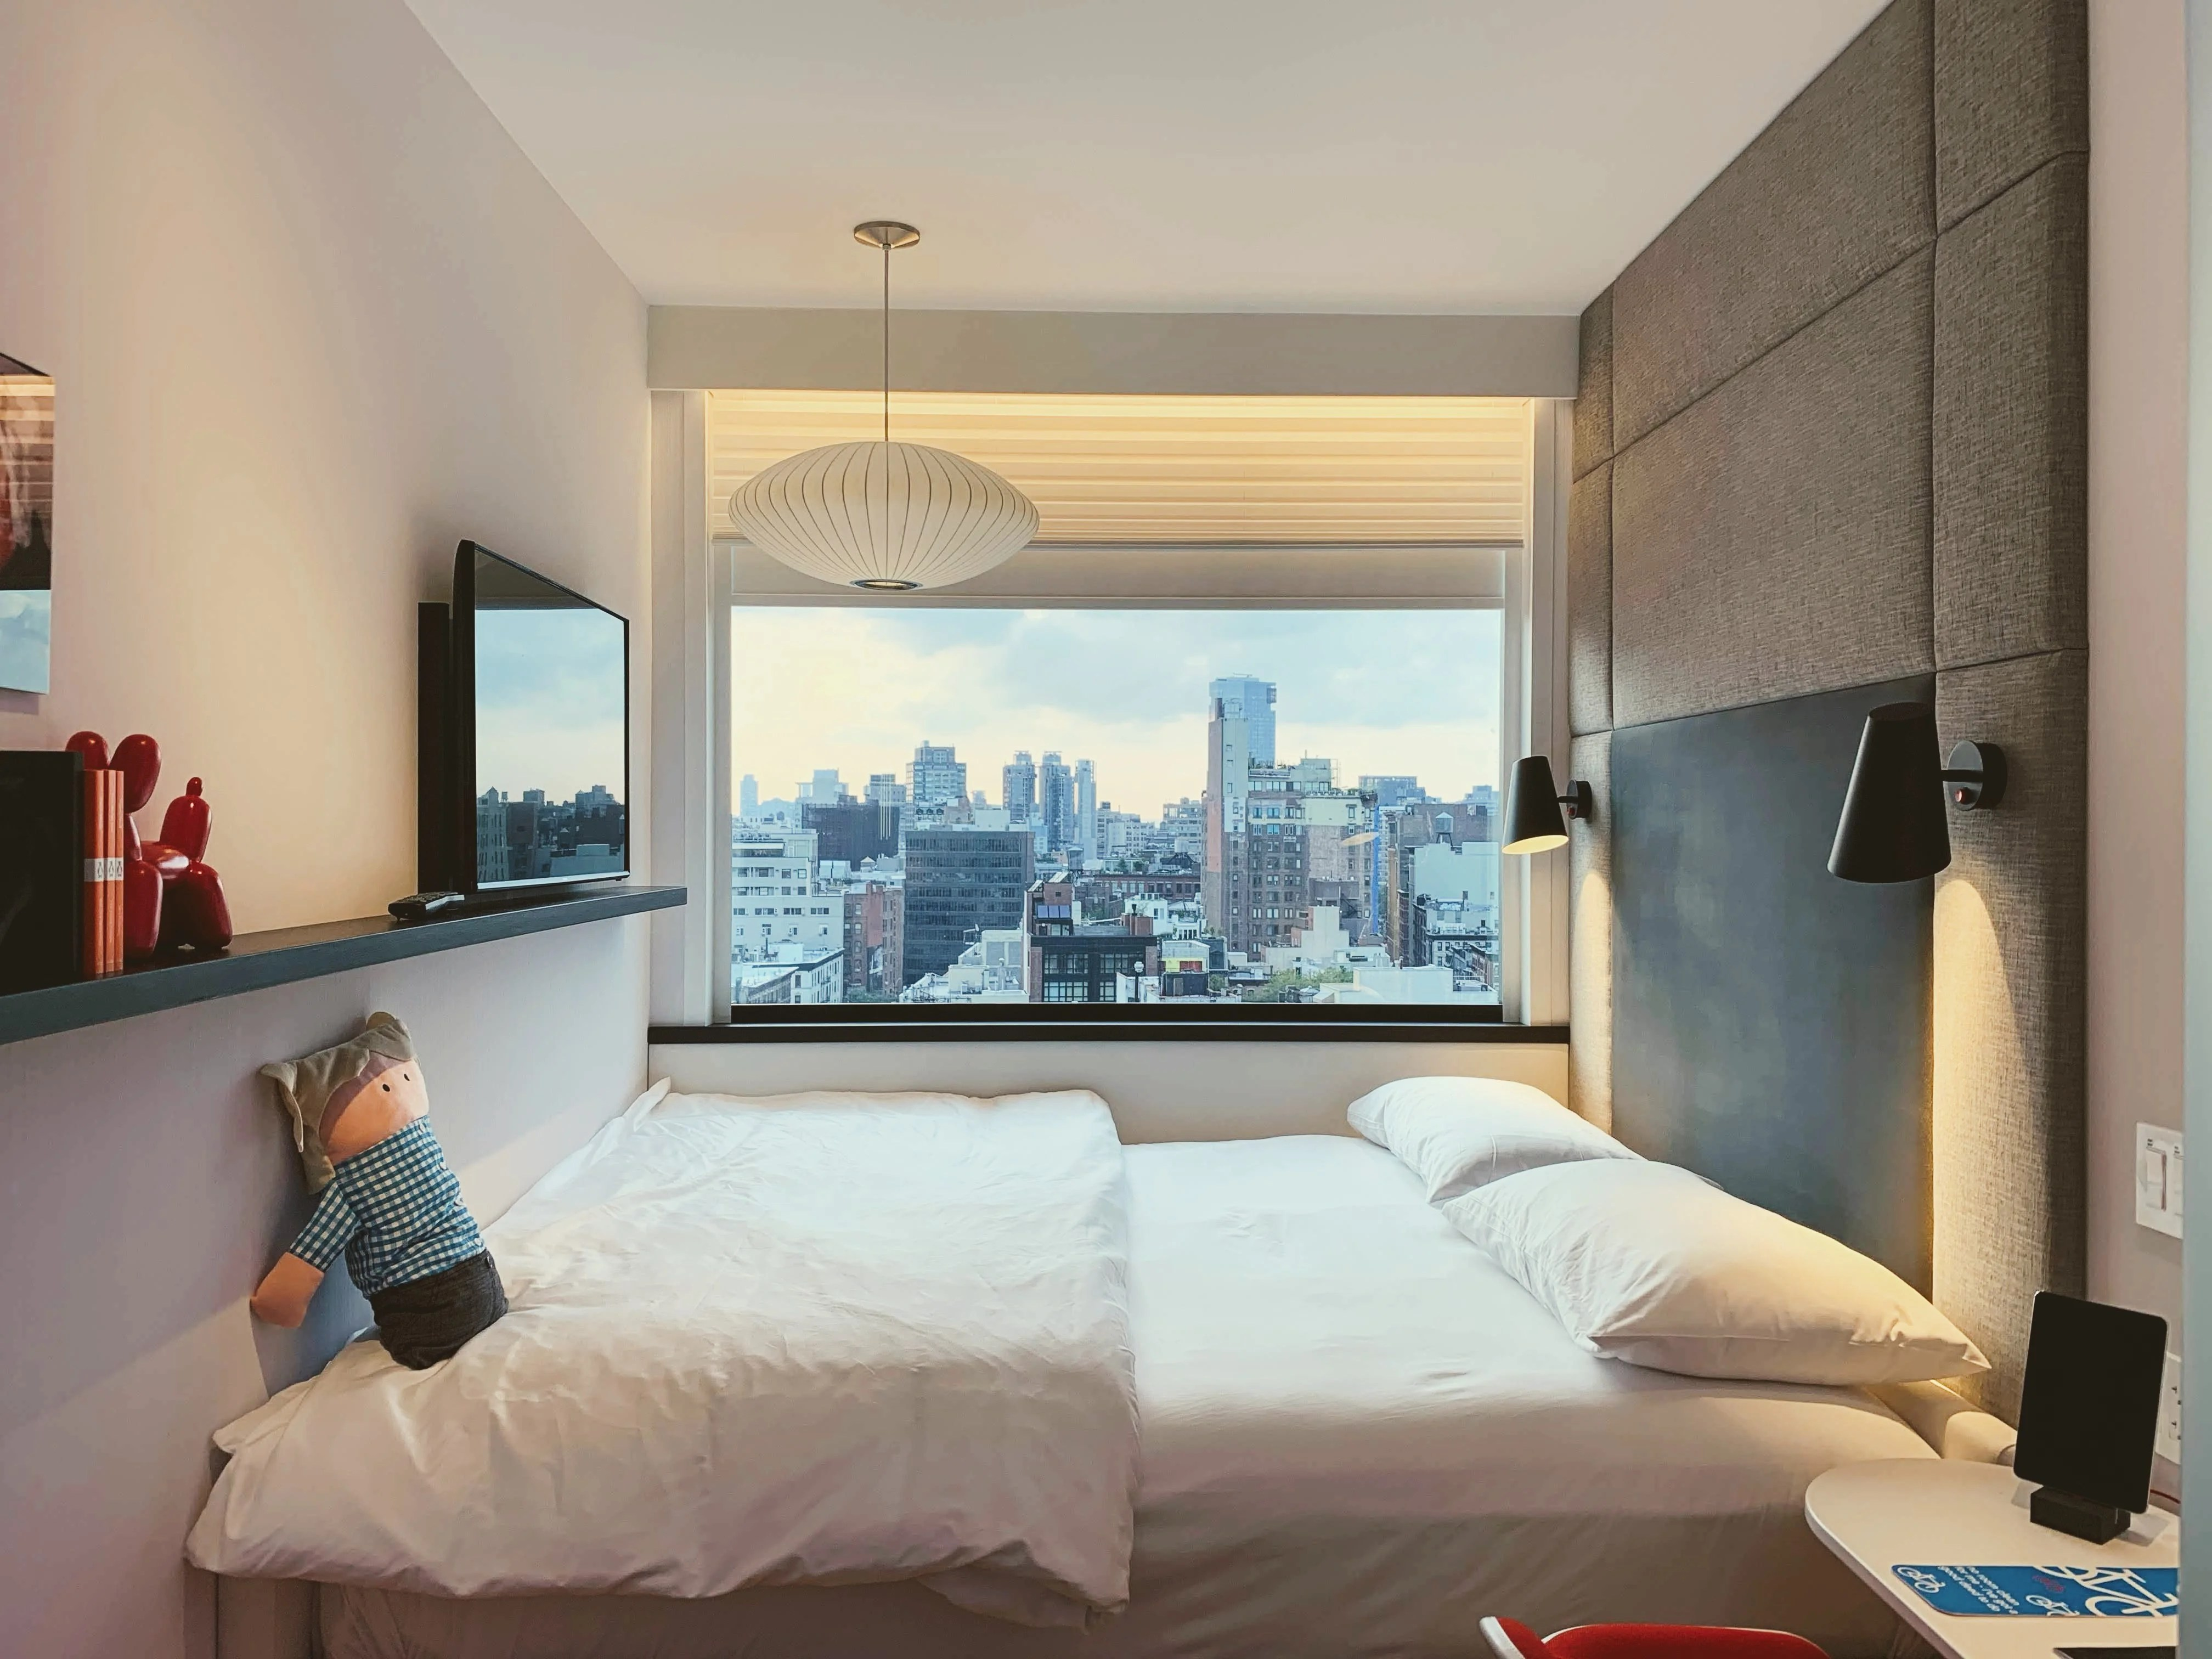 Rooms: Hotels.com Incentivizing Guests To Leave Reviews